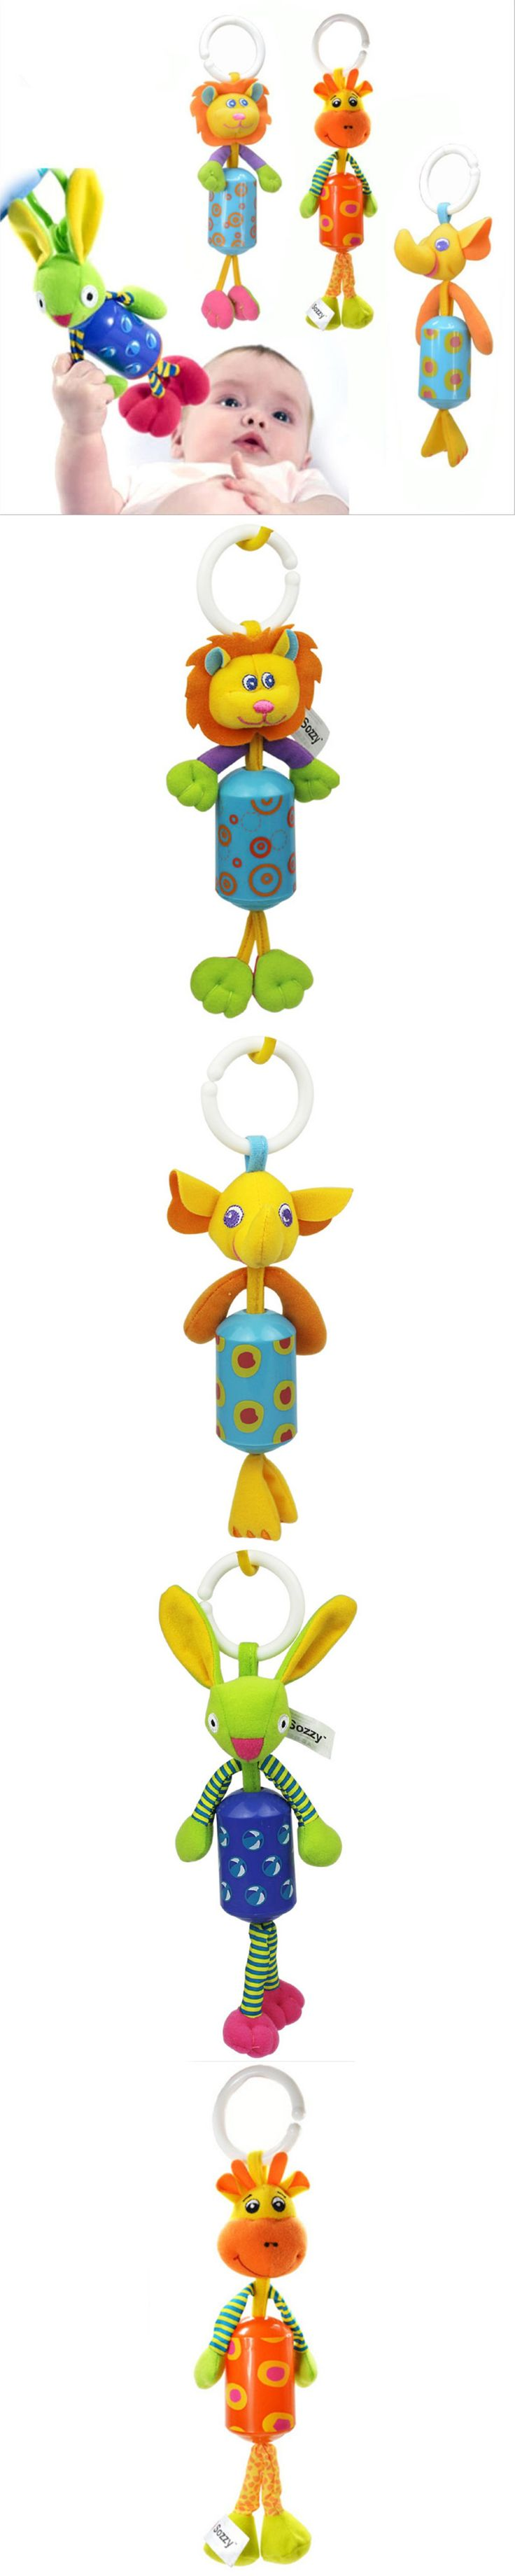 286 best Baby Toys images on Pinterest